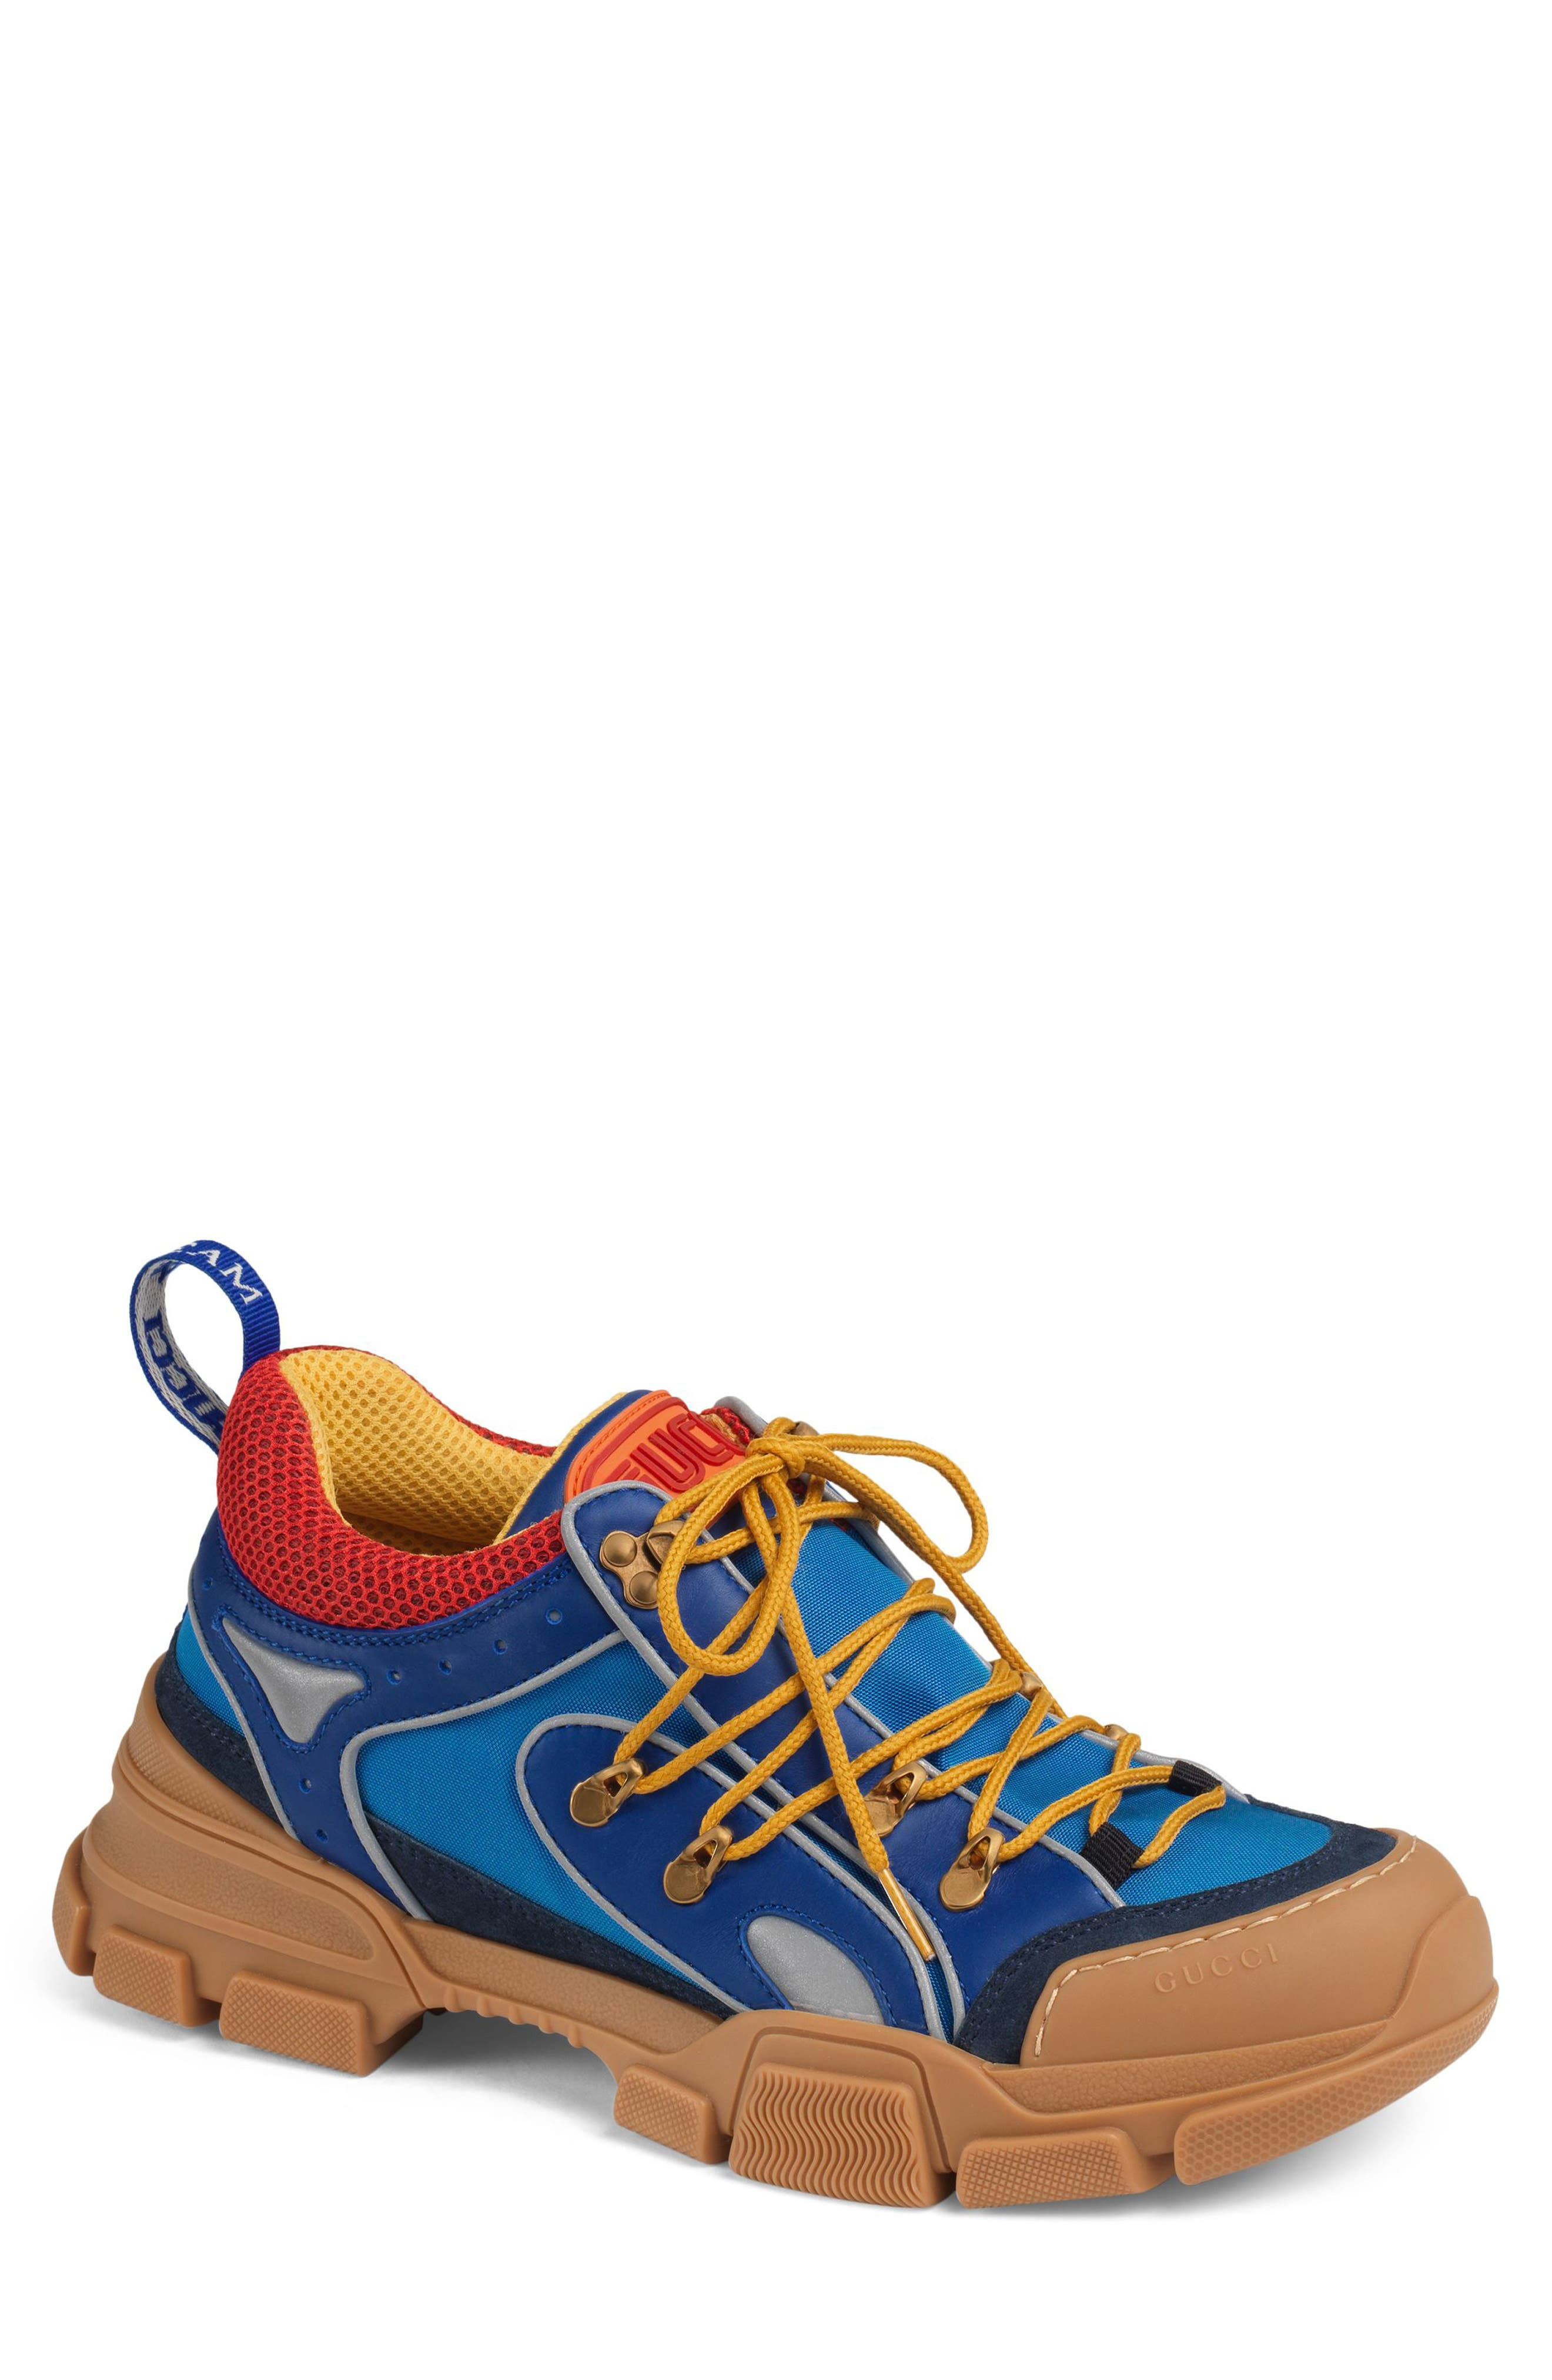 Leather and Canvas Sneaker,                             Main thumbnail 1, color,                             BLUE